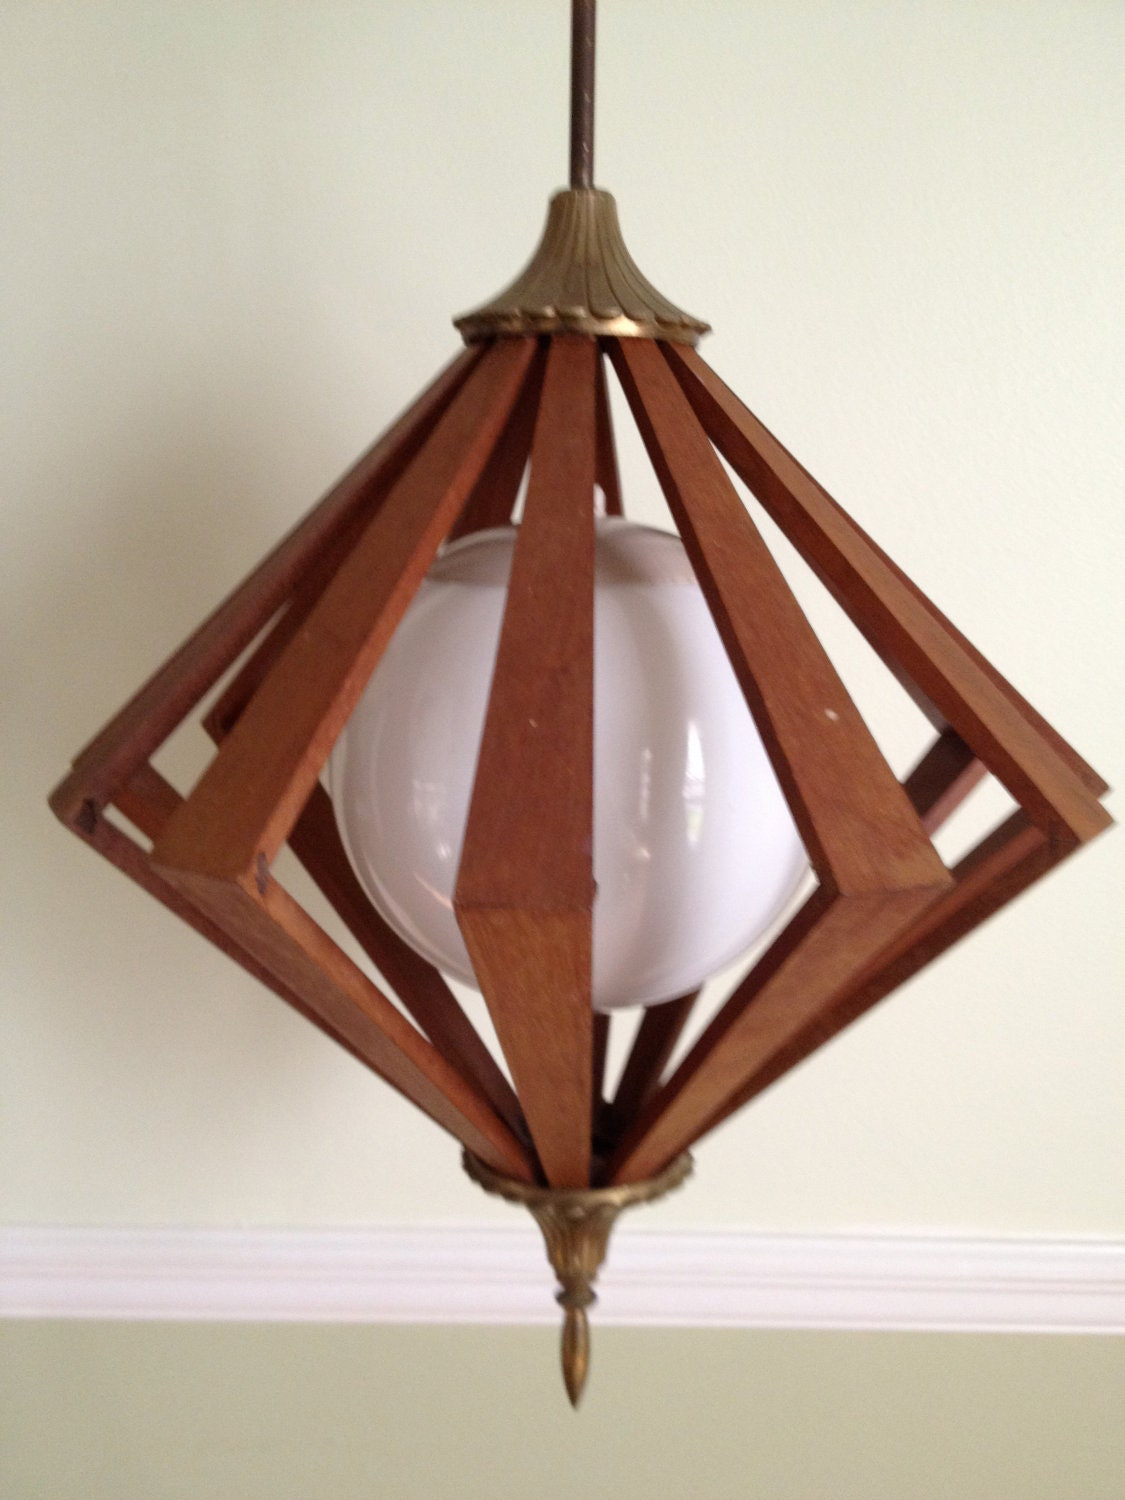 Mid century modern eames era chandelier 1960s 1970s by for Mid modern period